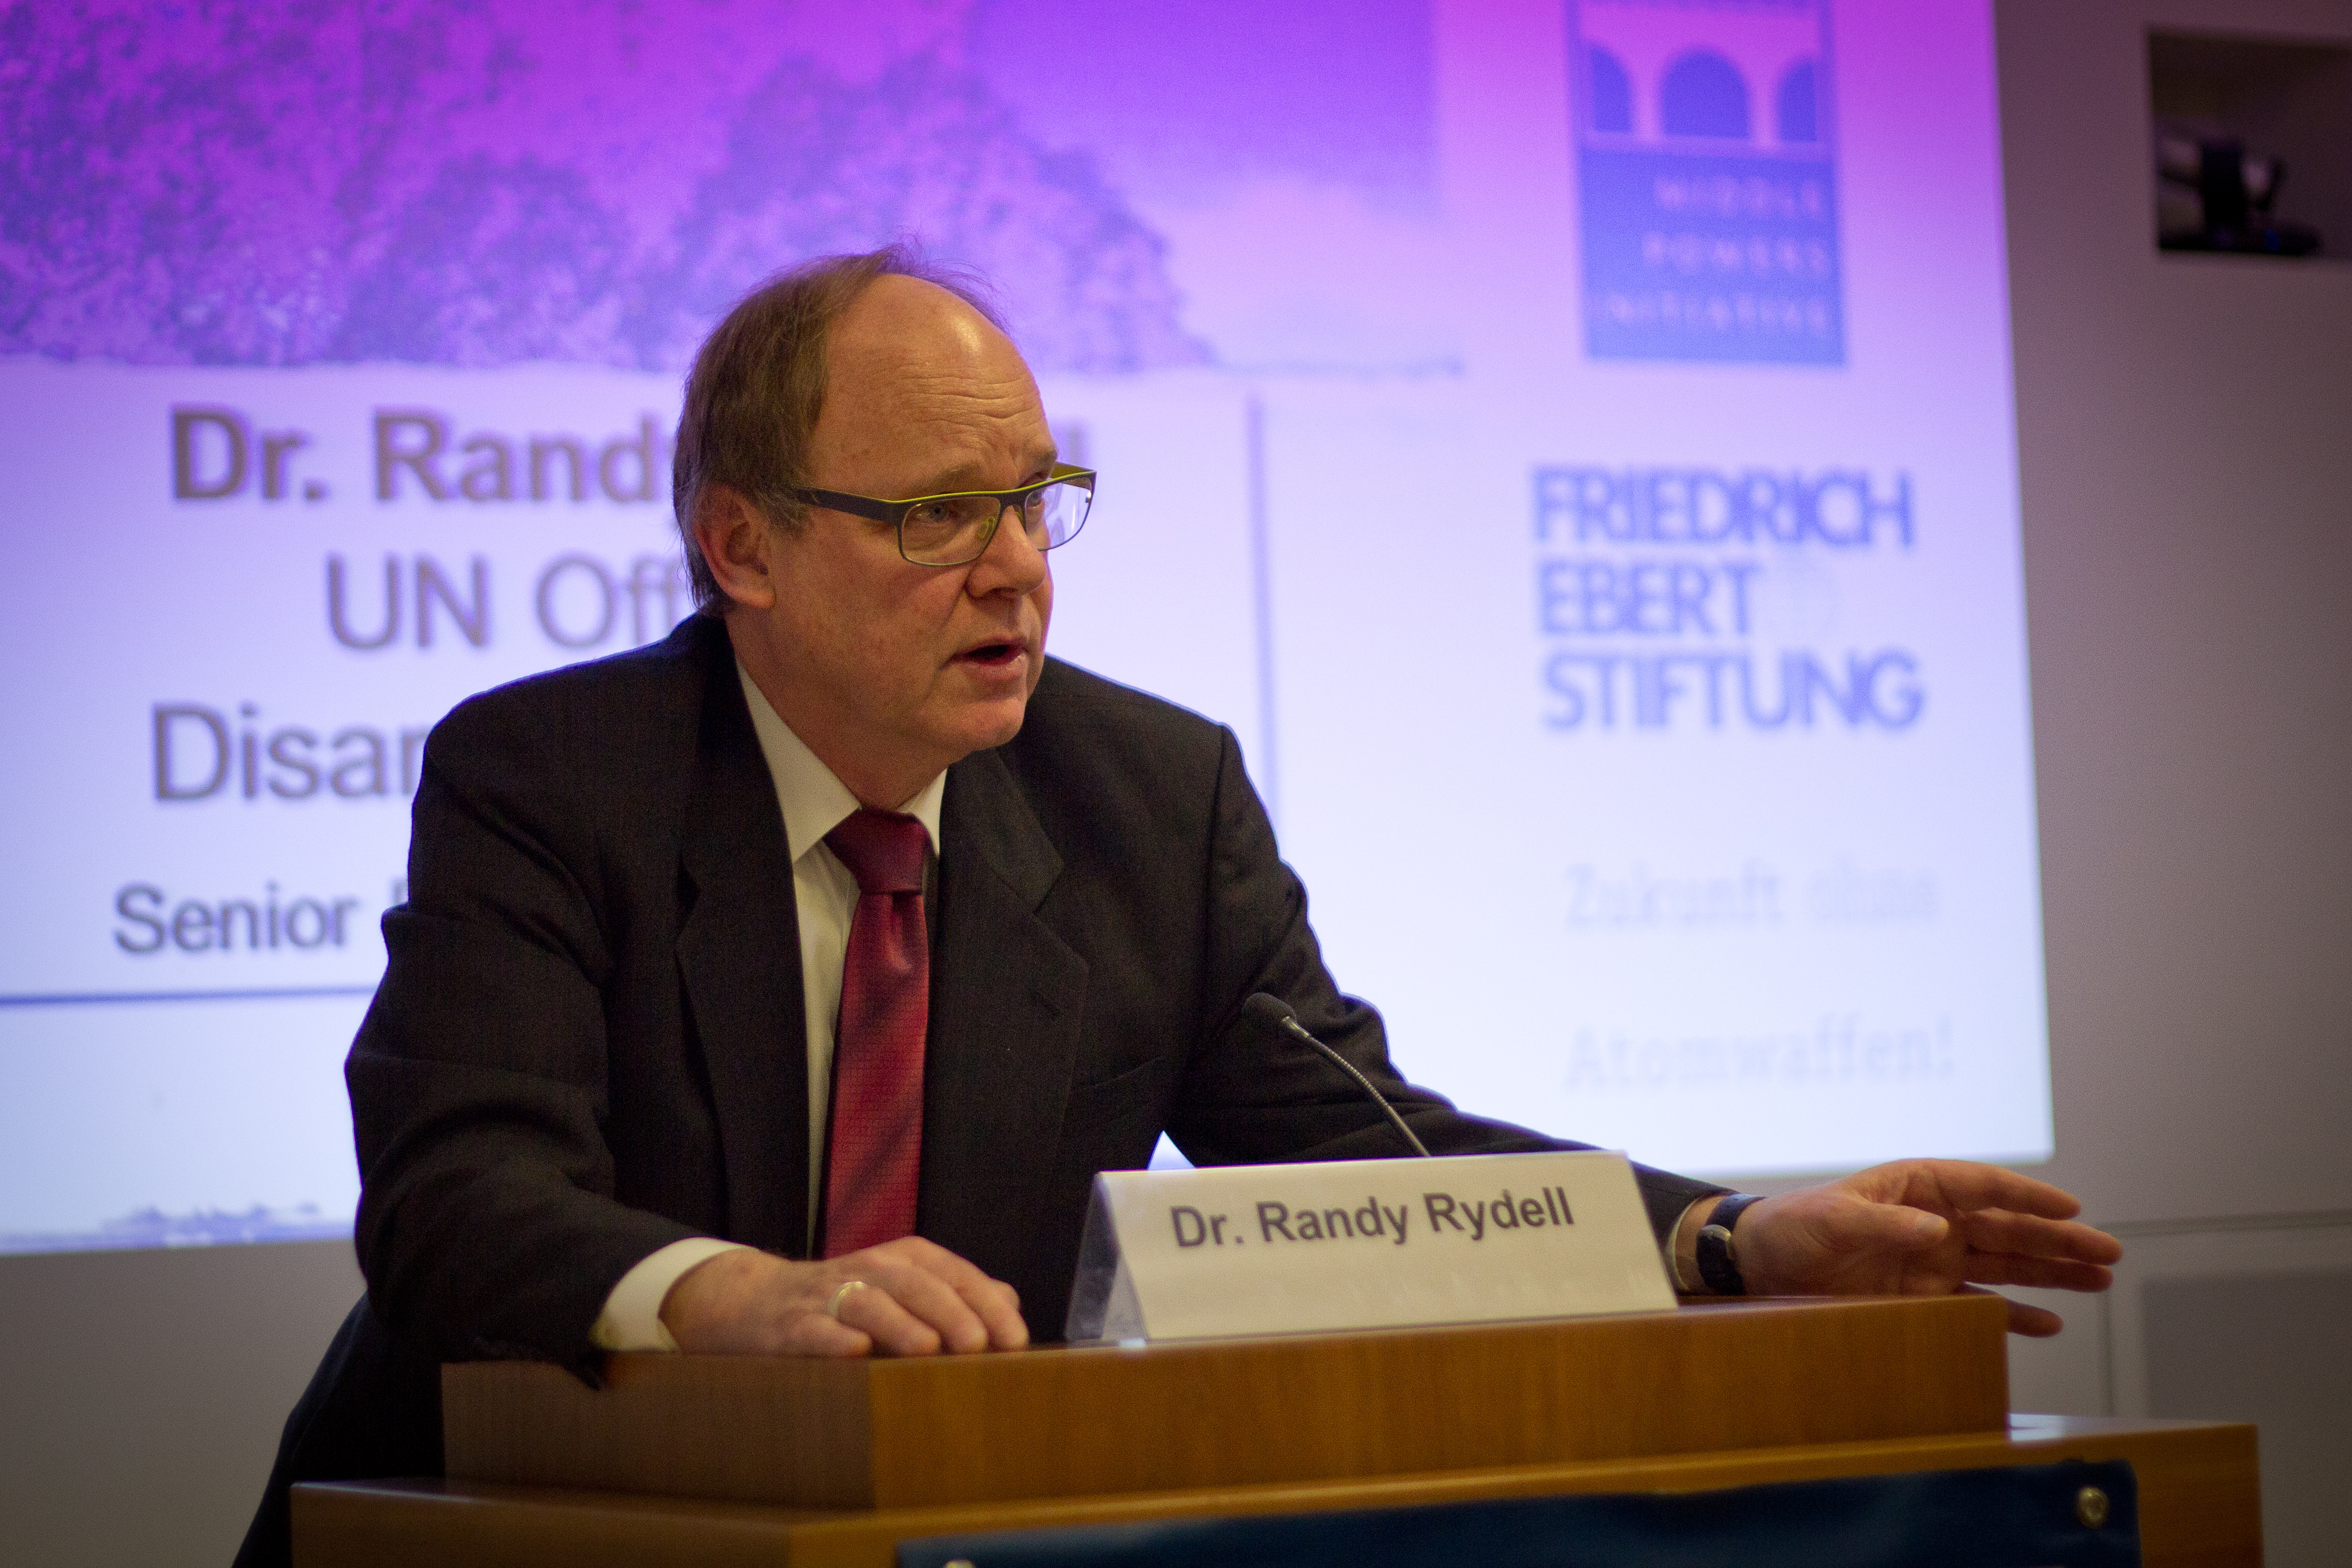 Randy Rydell, Senior Political Affairs Officer in the UN Office of Disarmament Affairs